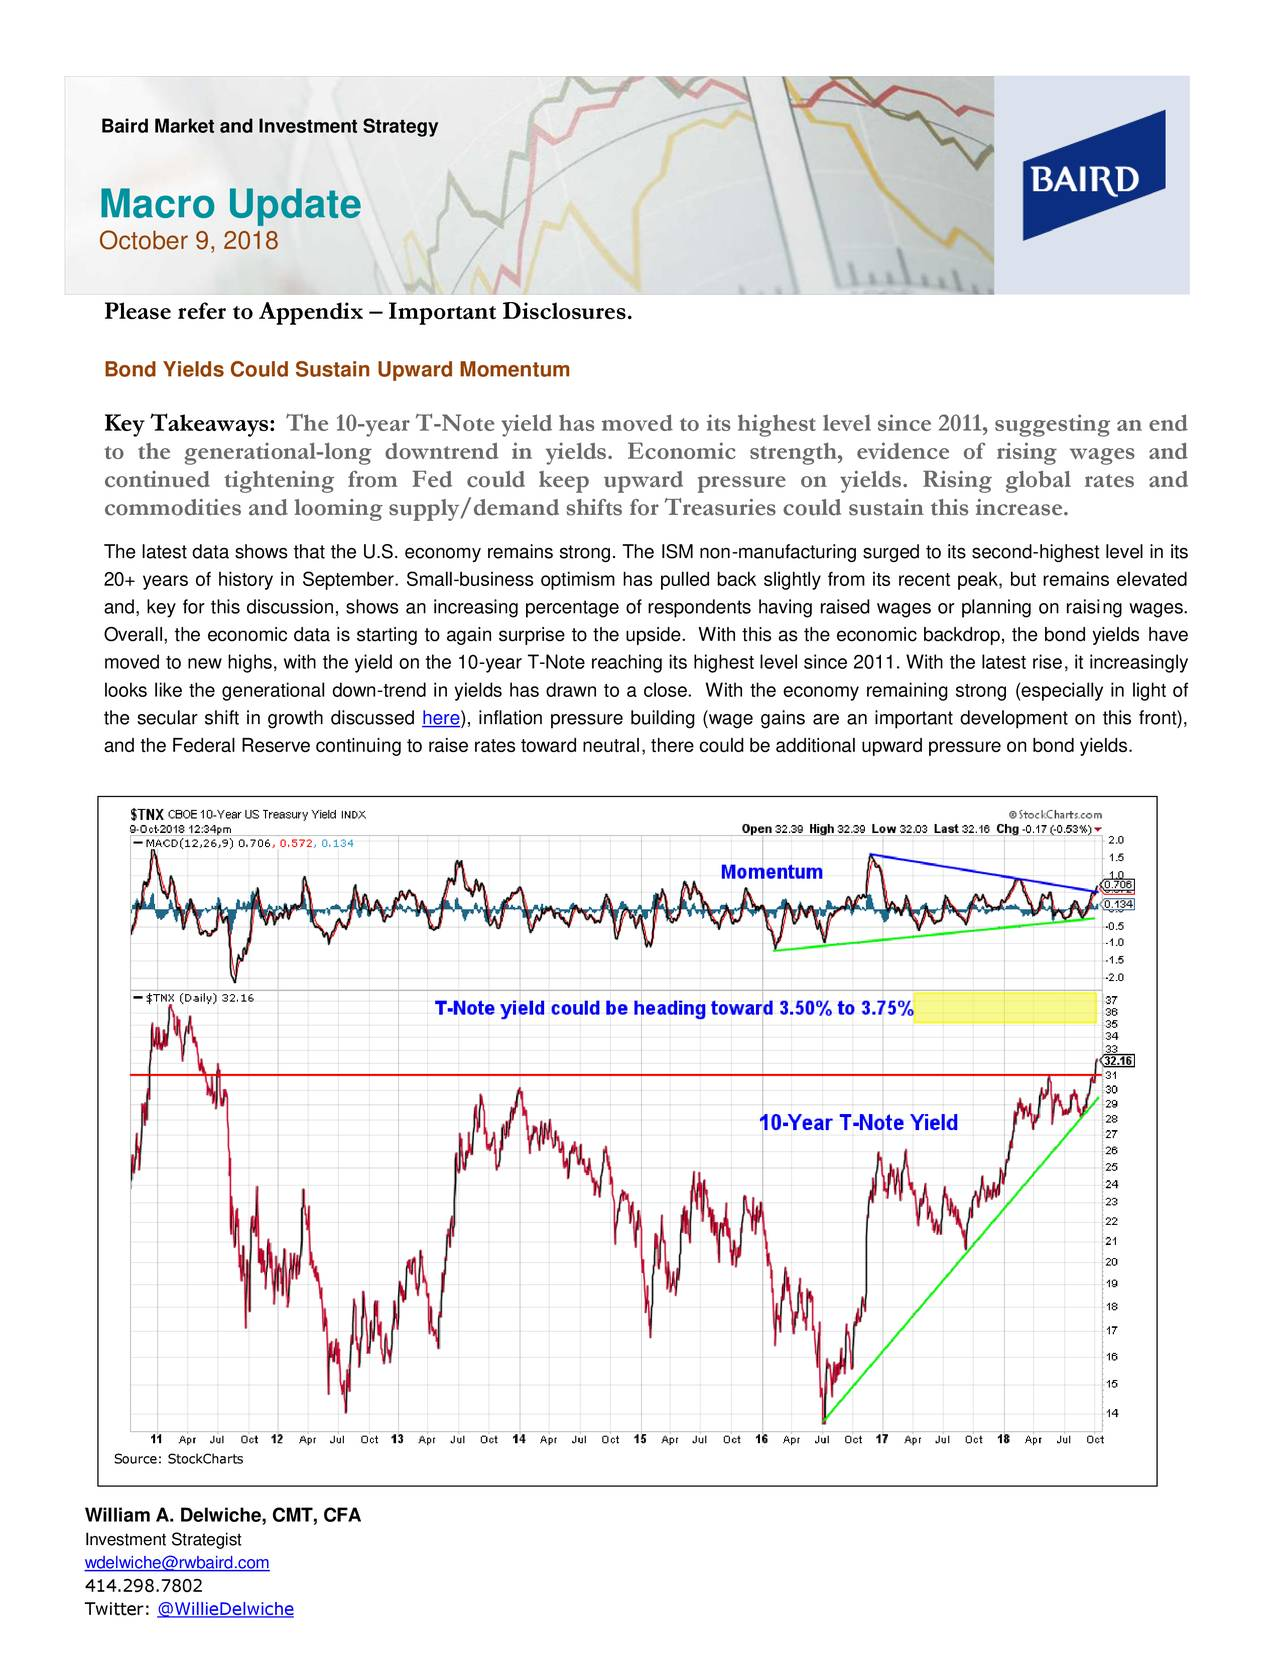 Macro Update October 9, 2018 Please refer to Appendix – Important Disclosures. Bond Yields Could Sustain Upward Momentum Key Takeaways: The 10-year T-Note yield has moved to its highest level since 2011, suggesting an end to the generational-long downtrend in yields. Economic strength, evidence of rising wages and continued tightening from Fed could keep upward pressure on yields. Rising global rates and commodities and looming supply/demand shifts for Treasuries could sustain this increase. The latest data shows that the U.S. economy remains strong. The ISM non-manufacturing surged to its second-highest level in its 20+ years of history in September. Small-business optimism has pulled back slightly from its recent peak, but remains elevated and, key for this discussion, shows an increasing percentage of respondents having raised wages or planning on raising wages. Overall, the economic data is starting to again surprise to the upside. With this as the economic backdrop, the bond yields have moved to new highs, with the yield on the 10-year T-Note reaching its highest level since 2011. With the latest rise, it increasingly looks like the generational down-trend in yields has drawn to a close. With the economy remaining strong (especially in light of the secular shift in growth discussed here), inflation pressure building (wage gains are an important development on this front), and the Federal Reserve continuing to raise rates toward neutral, there could be additional upward pressure on bond yields. Source: StockCharts William A. Delwiche, CMT, CFA Investment Strategist wdelwiche@rwbaird.com 414.298.7802 Twitter: @WillieDelwiche